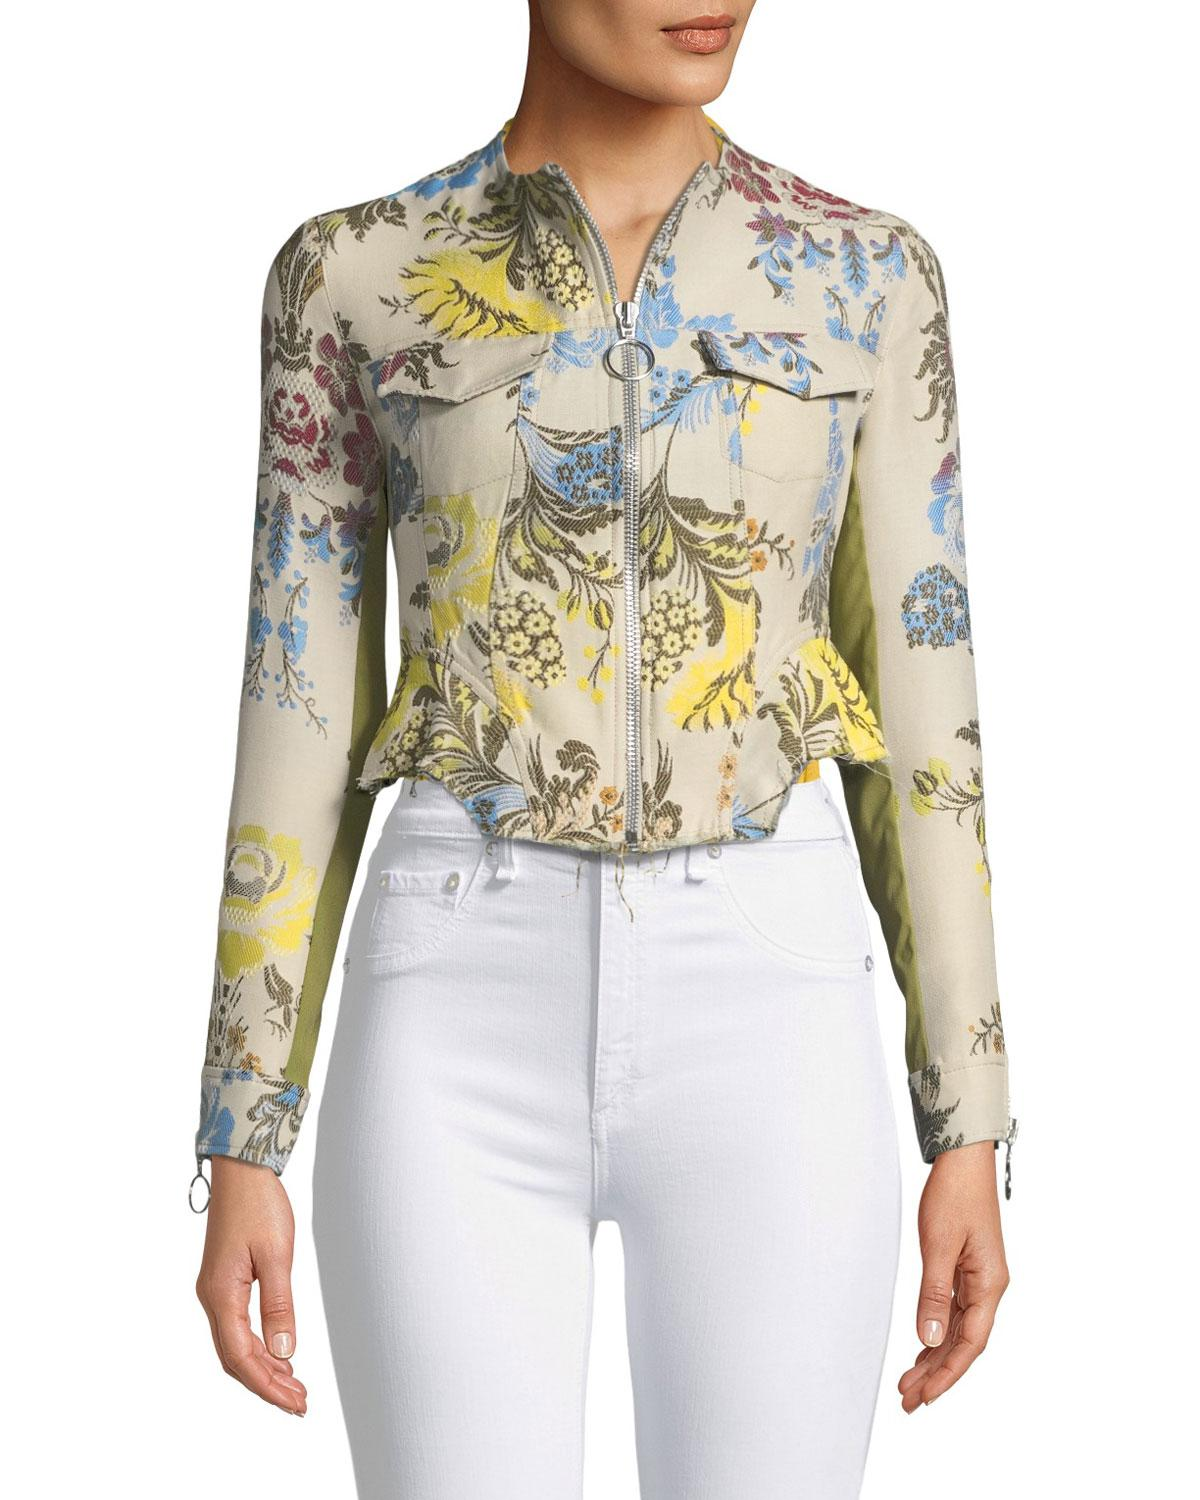 6530e6df619b11 Lyst - Marques Almeida Zip-front Floral Brocade Cropped Peplum Jacket